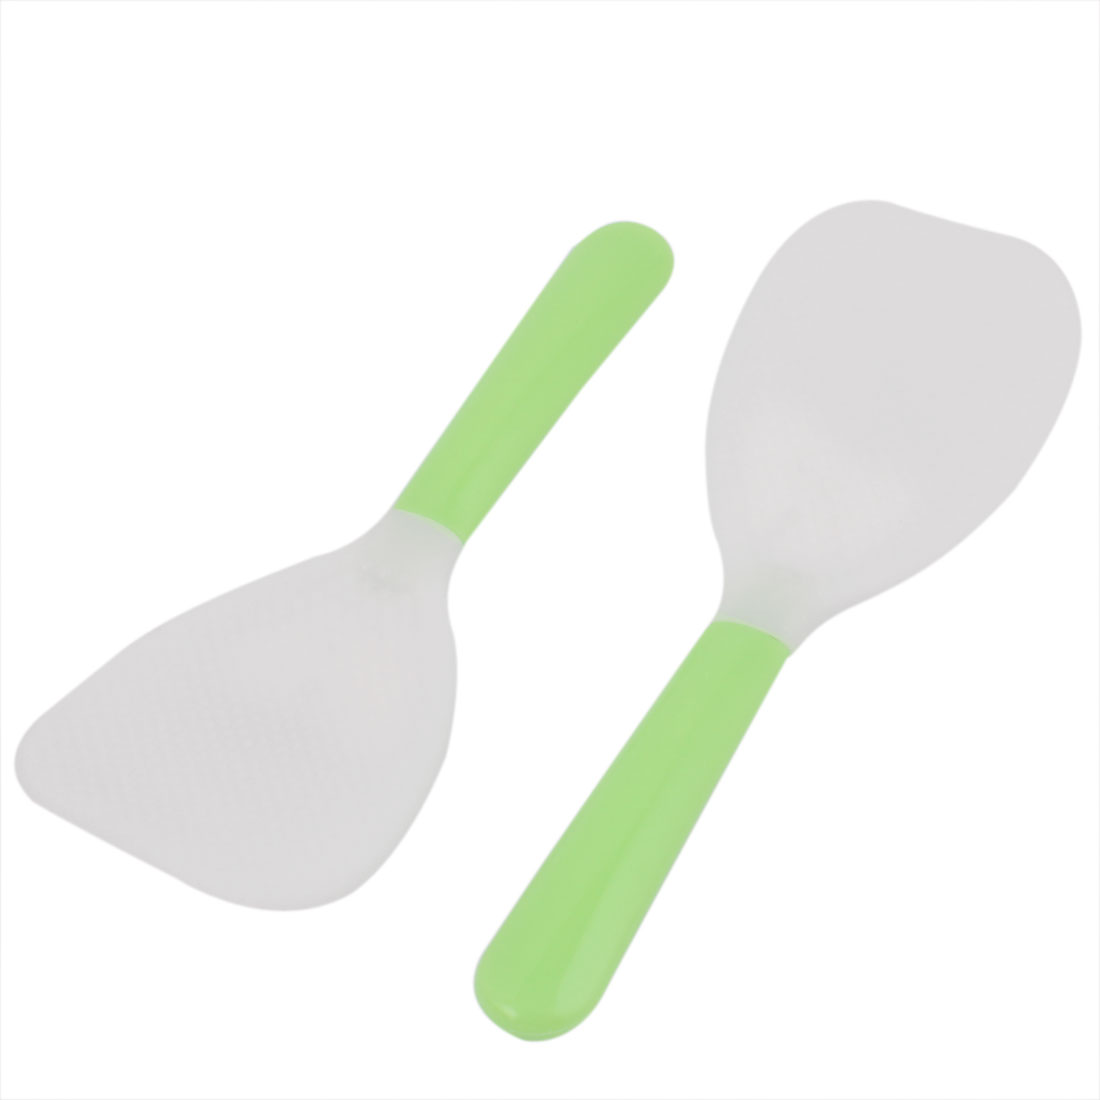 2 Pcs Plastic Grip Dotted Flat Rice Scoop Spoon Paddle Spatula Tableware